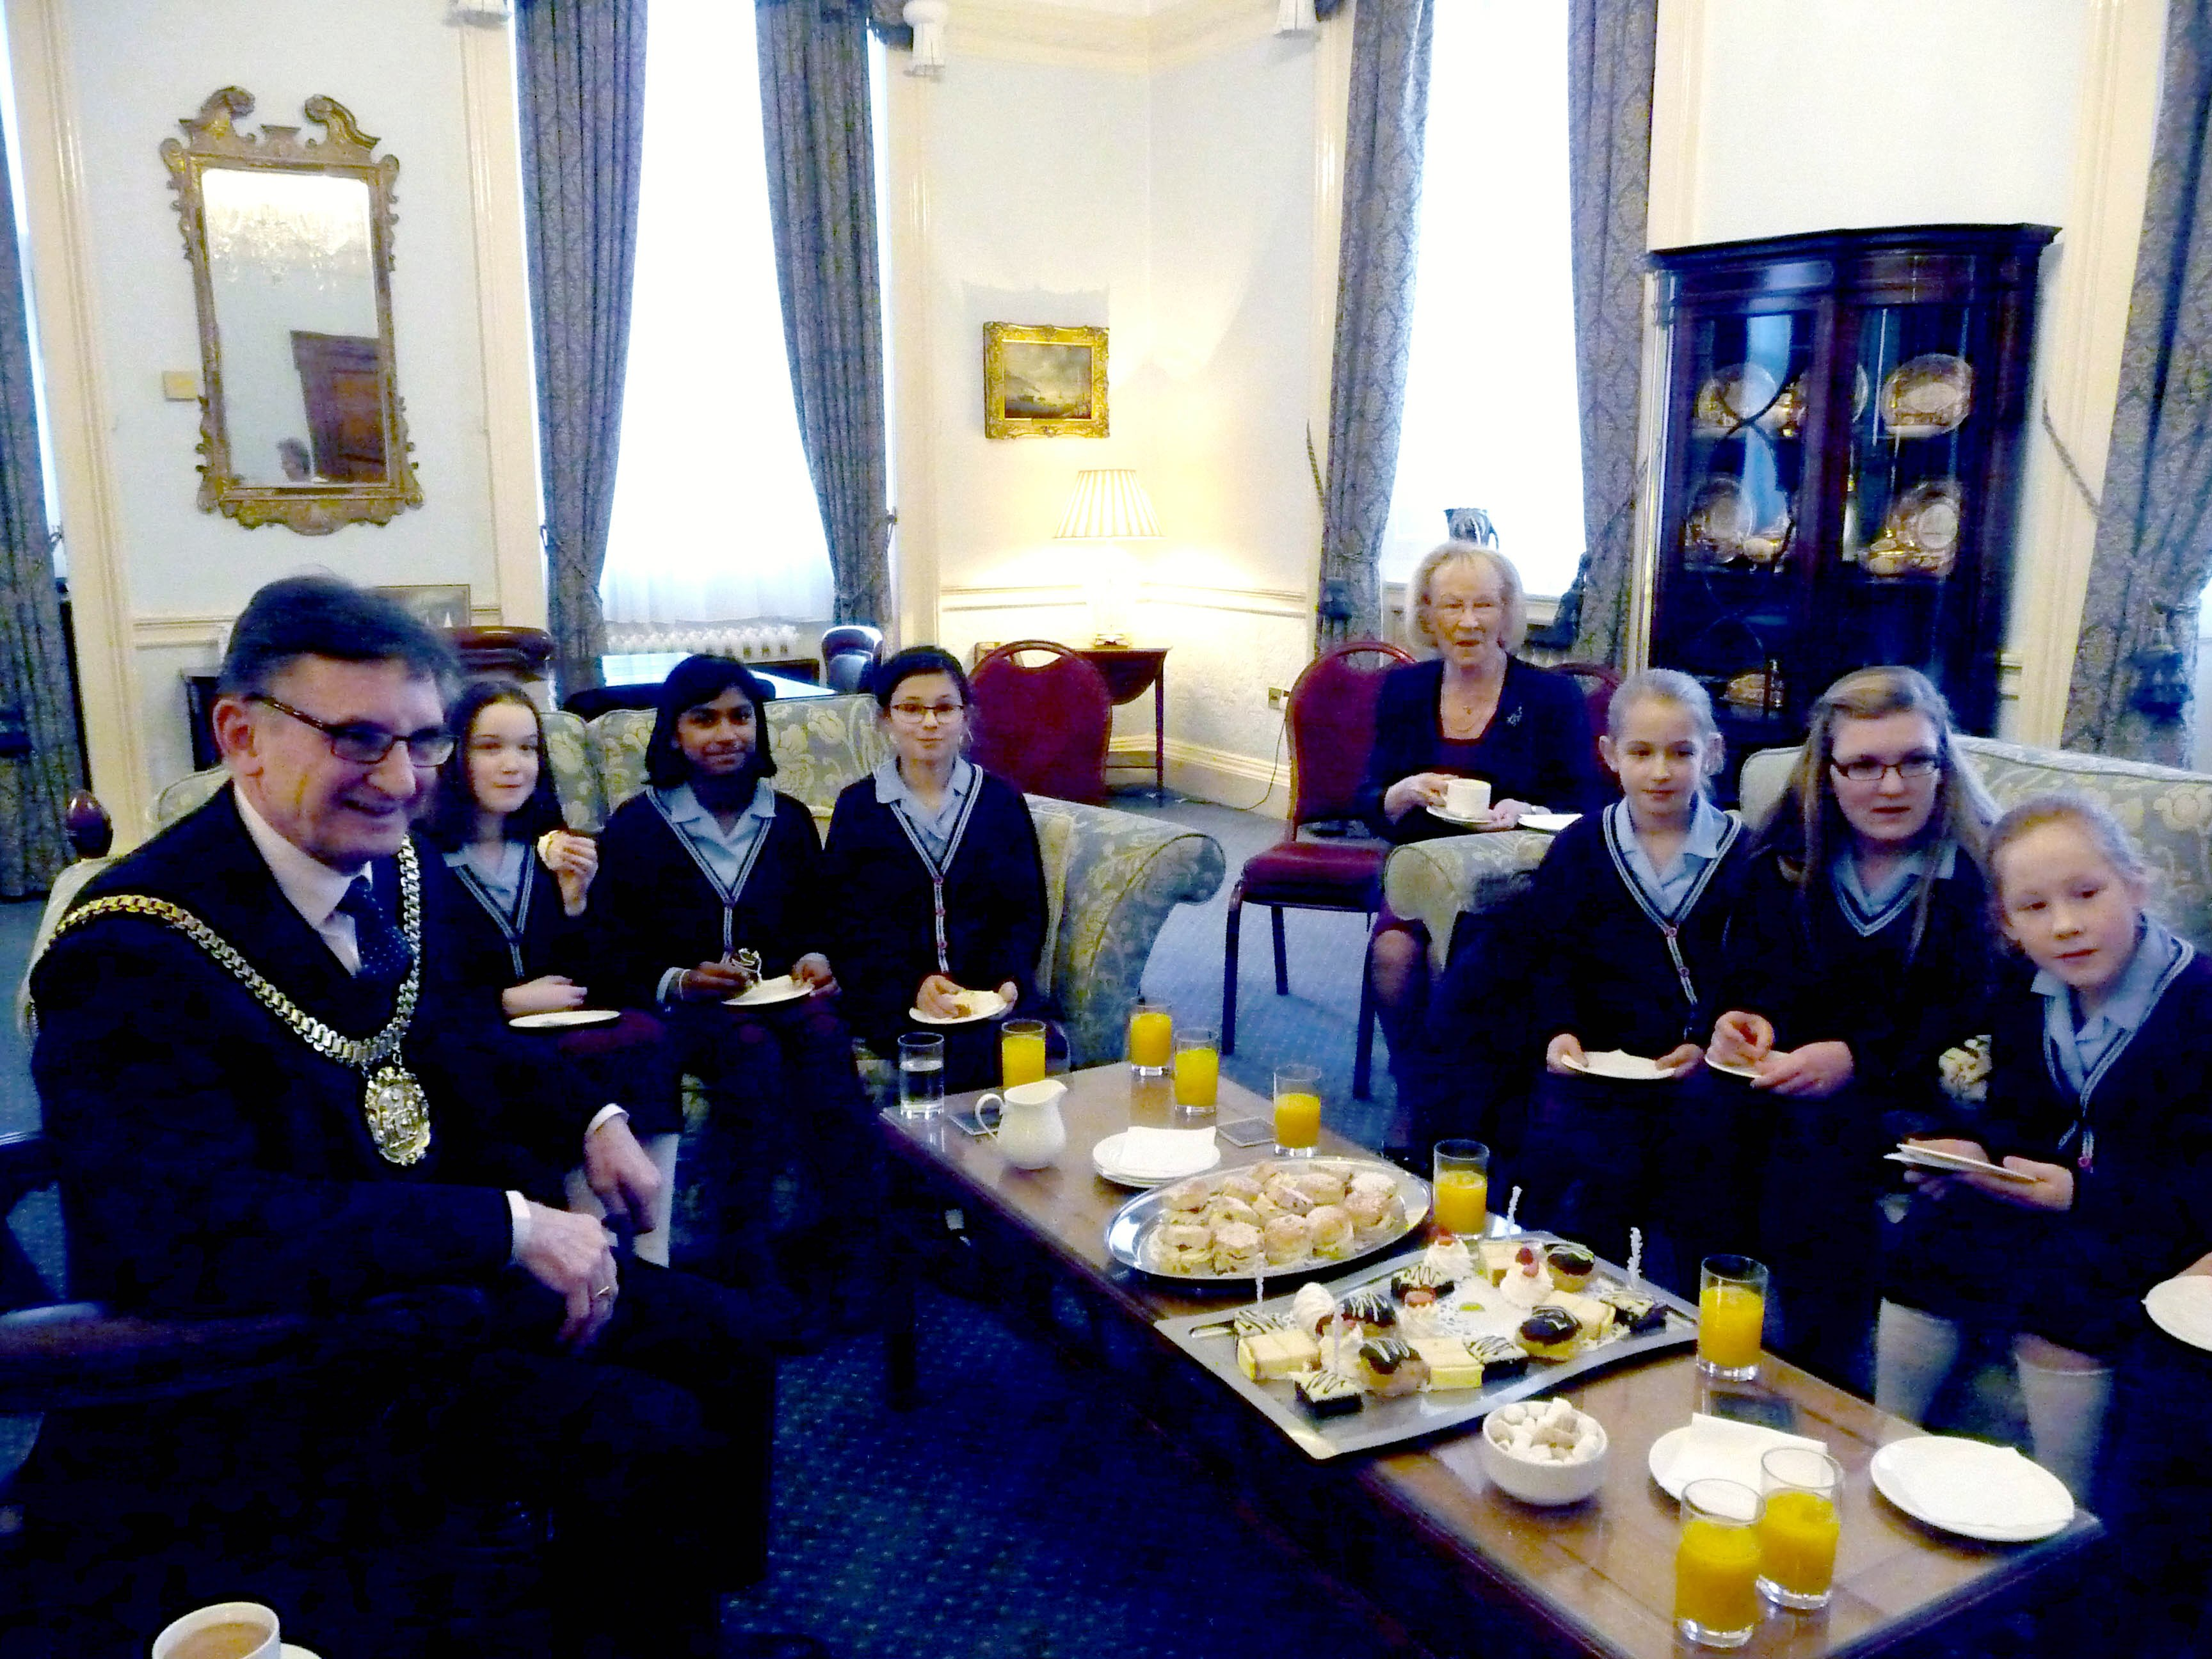 Merseyside YE in the Mayor's Parlour. They were invited to tea with Liverpool Lord Mayor, January 2016